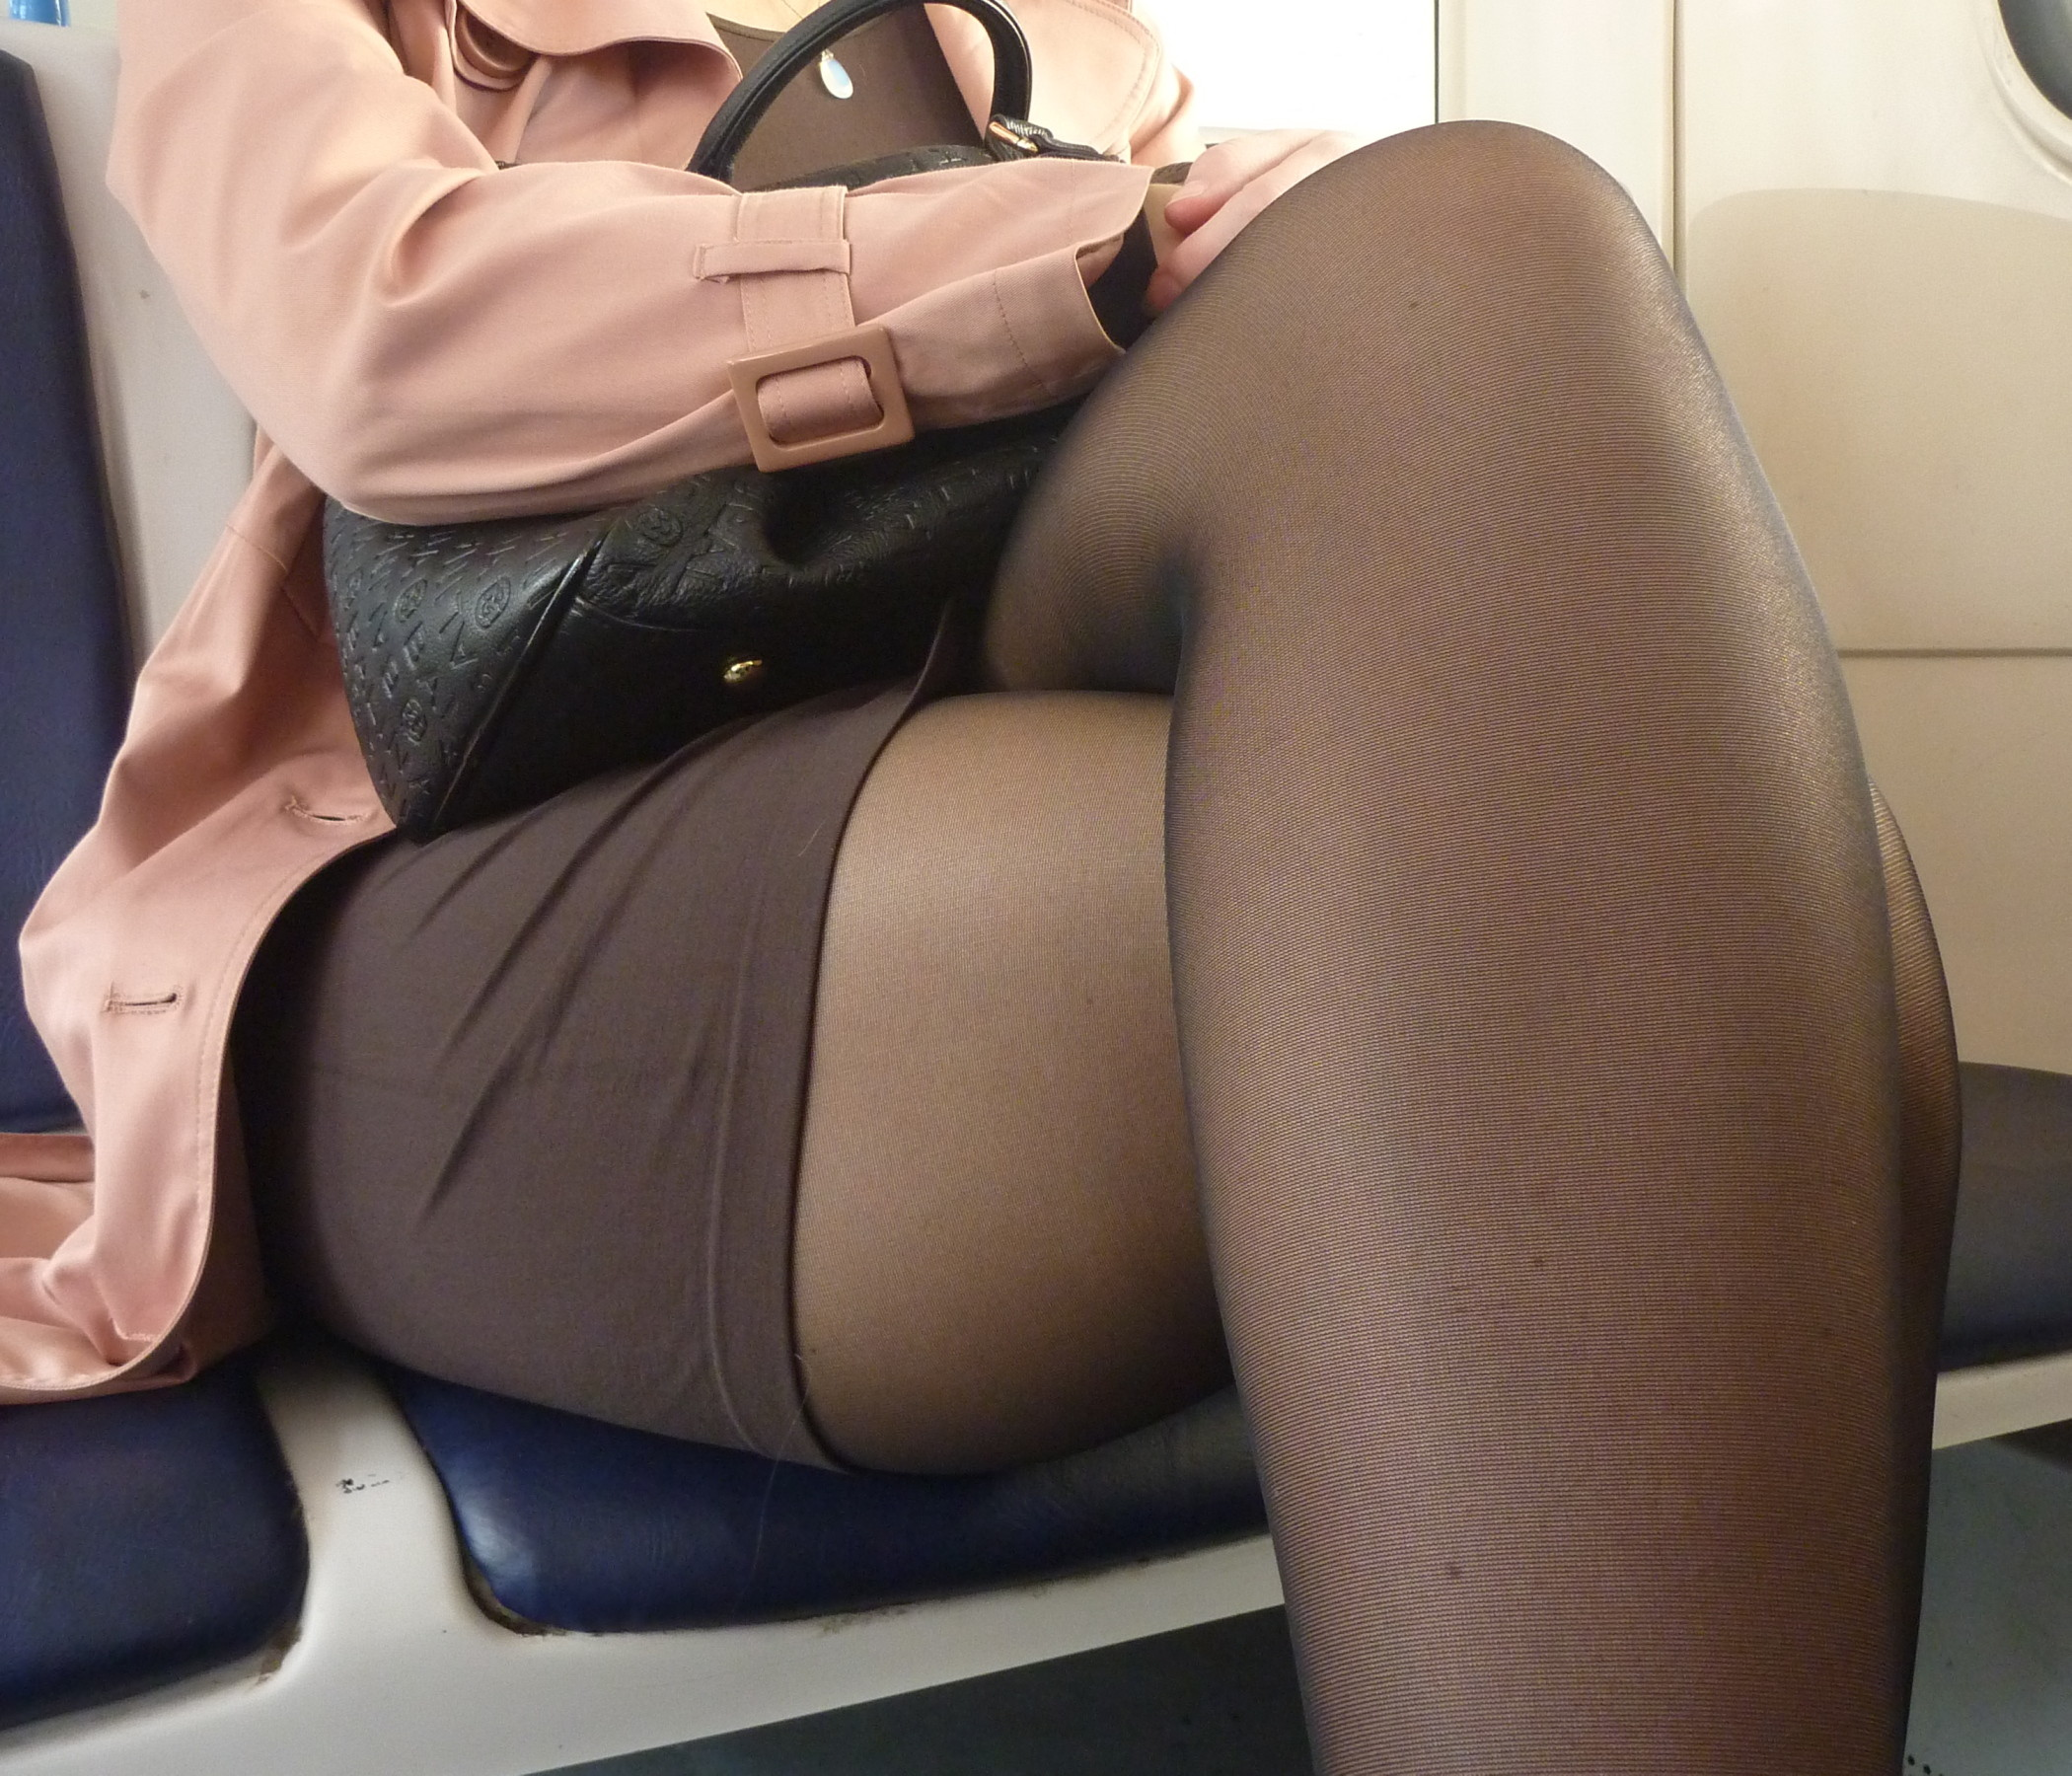 pantyhose hd